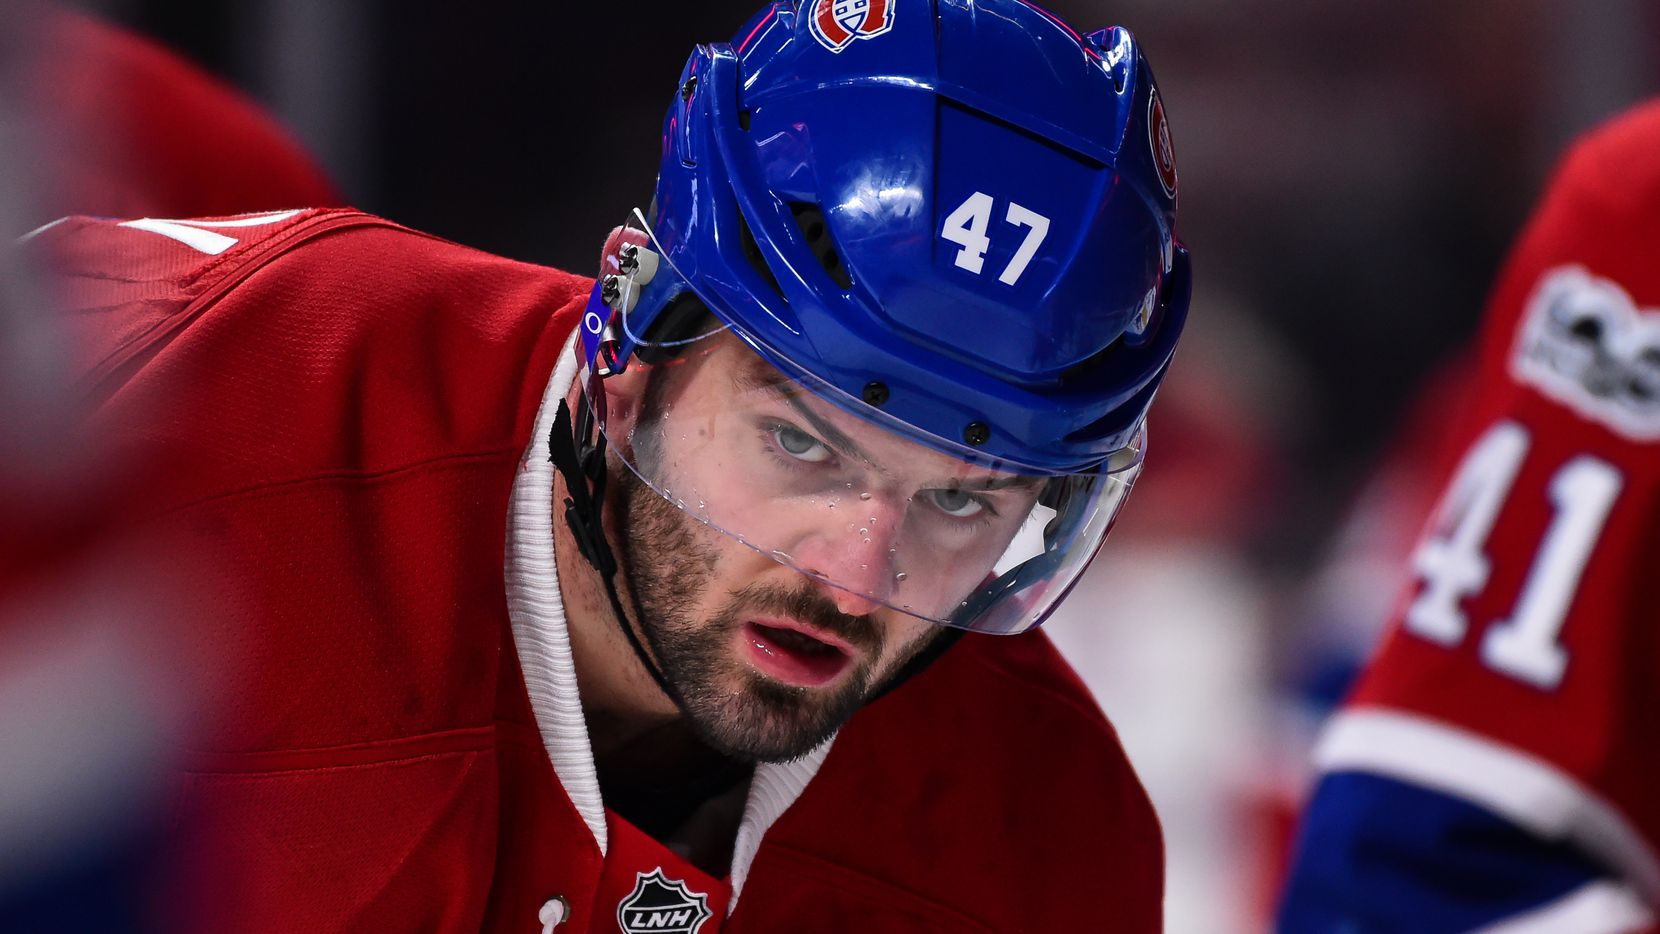 MONTREAL, QC - FEBRUARY 18:  Alexander Radulov #47 of the Montreal Canadiens looks on during the warmup prior to the NHL game against the Winnipeg Jets at the Bell Centre on February 18, 2017 in Montreal, Quebec, Canada.  The Winnipeg Jets defeated the Montreal Canadiens 3-1.  (Photo by Minas Panagiotakis/Getty Images)